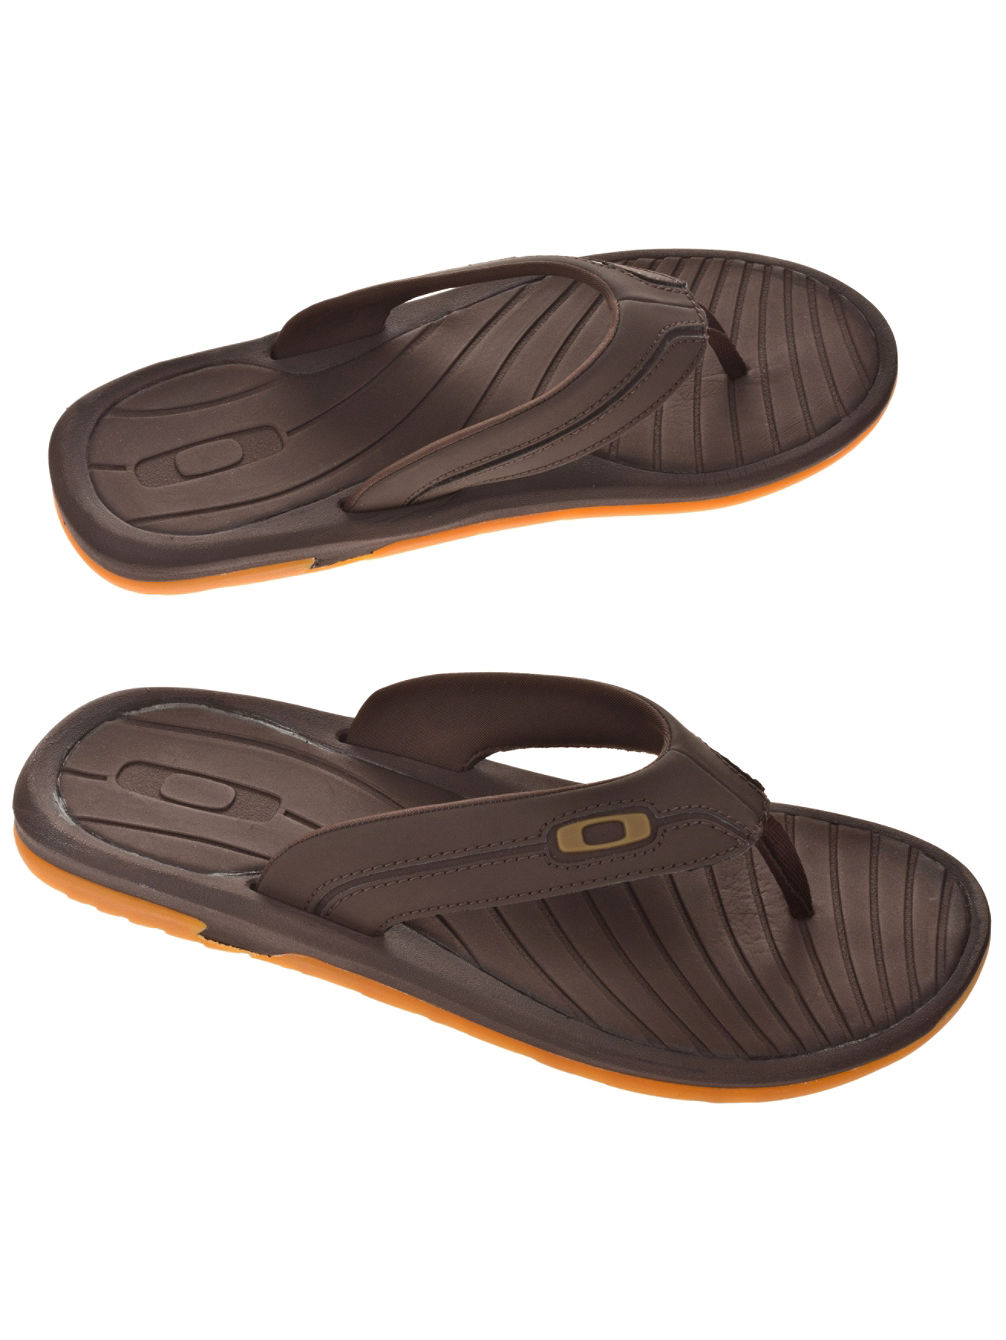 571f0824aa172 Buy Oakley Dune Sandals online at blue-tomato.com